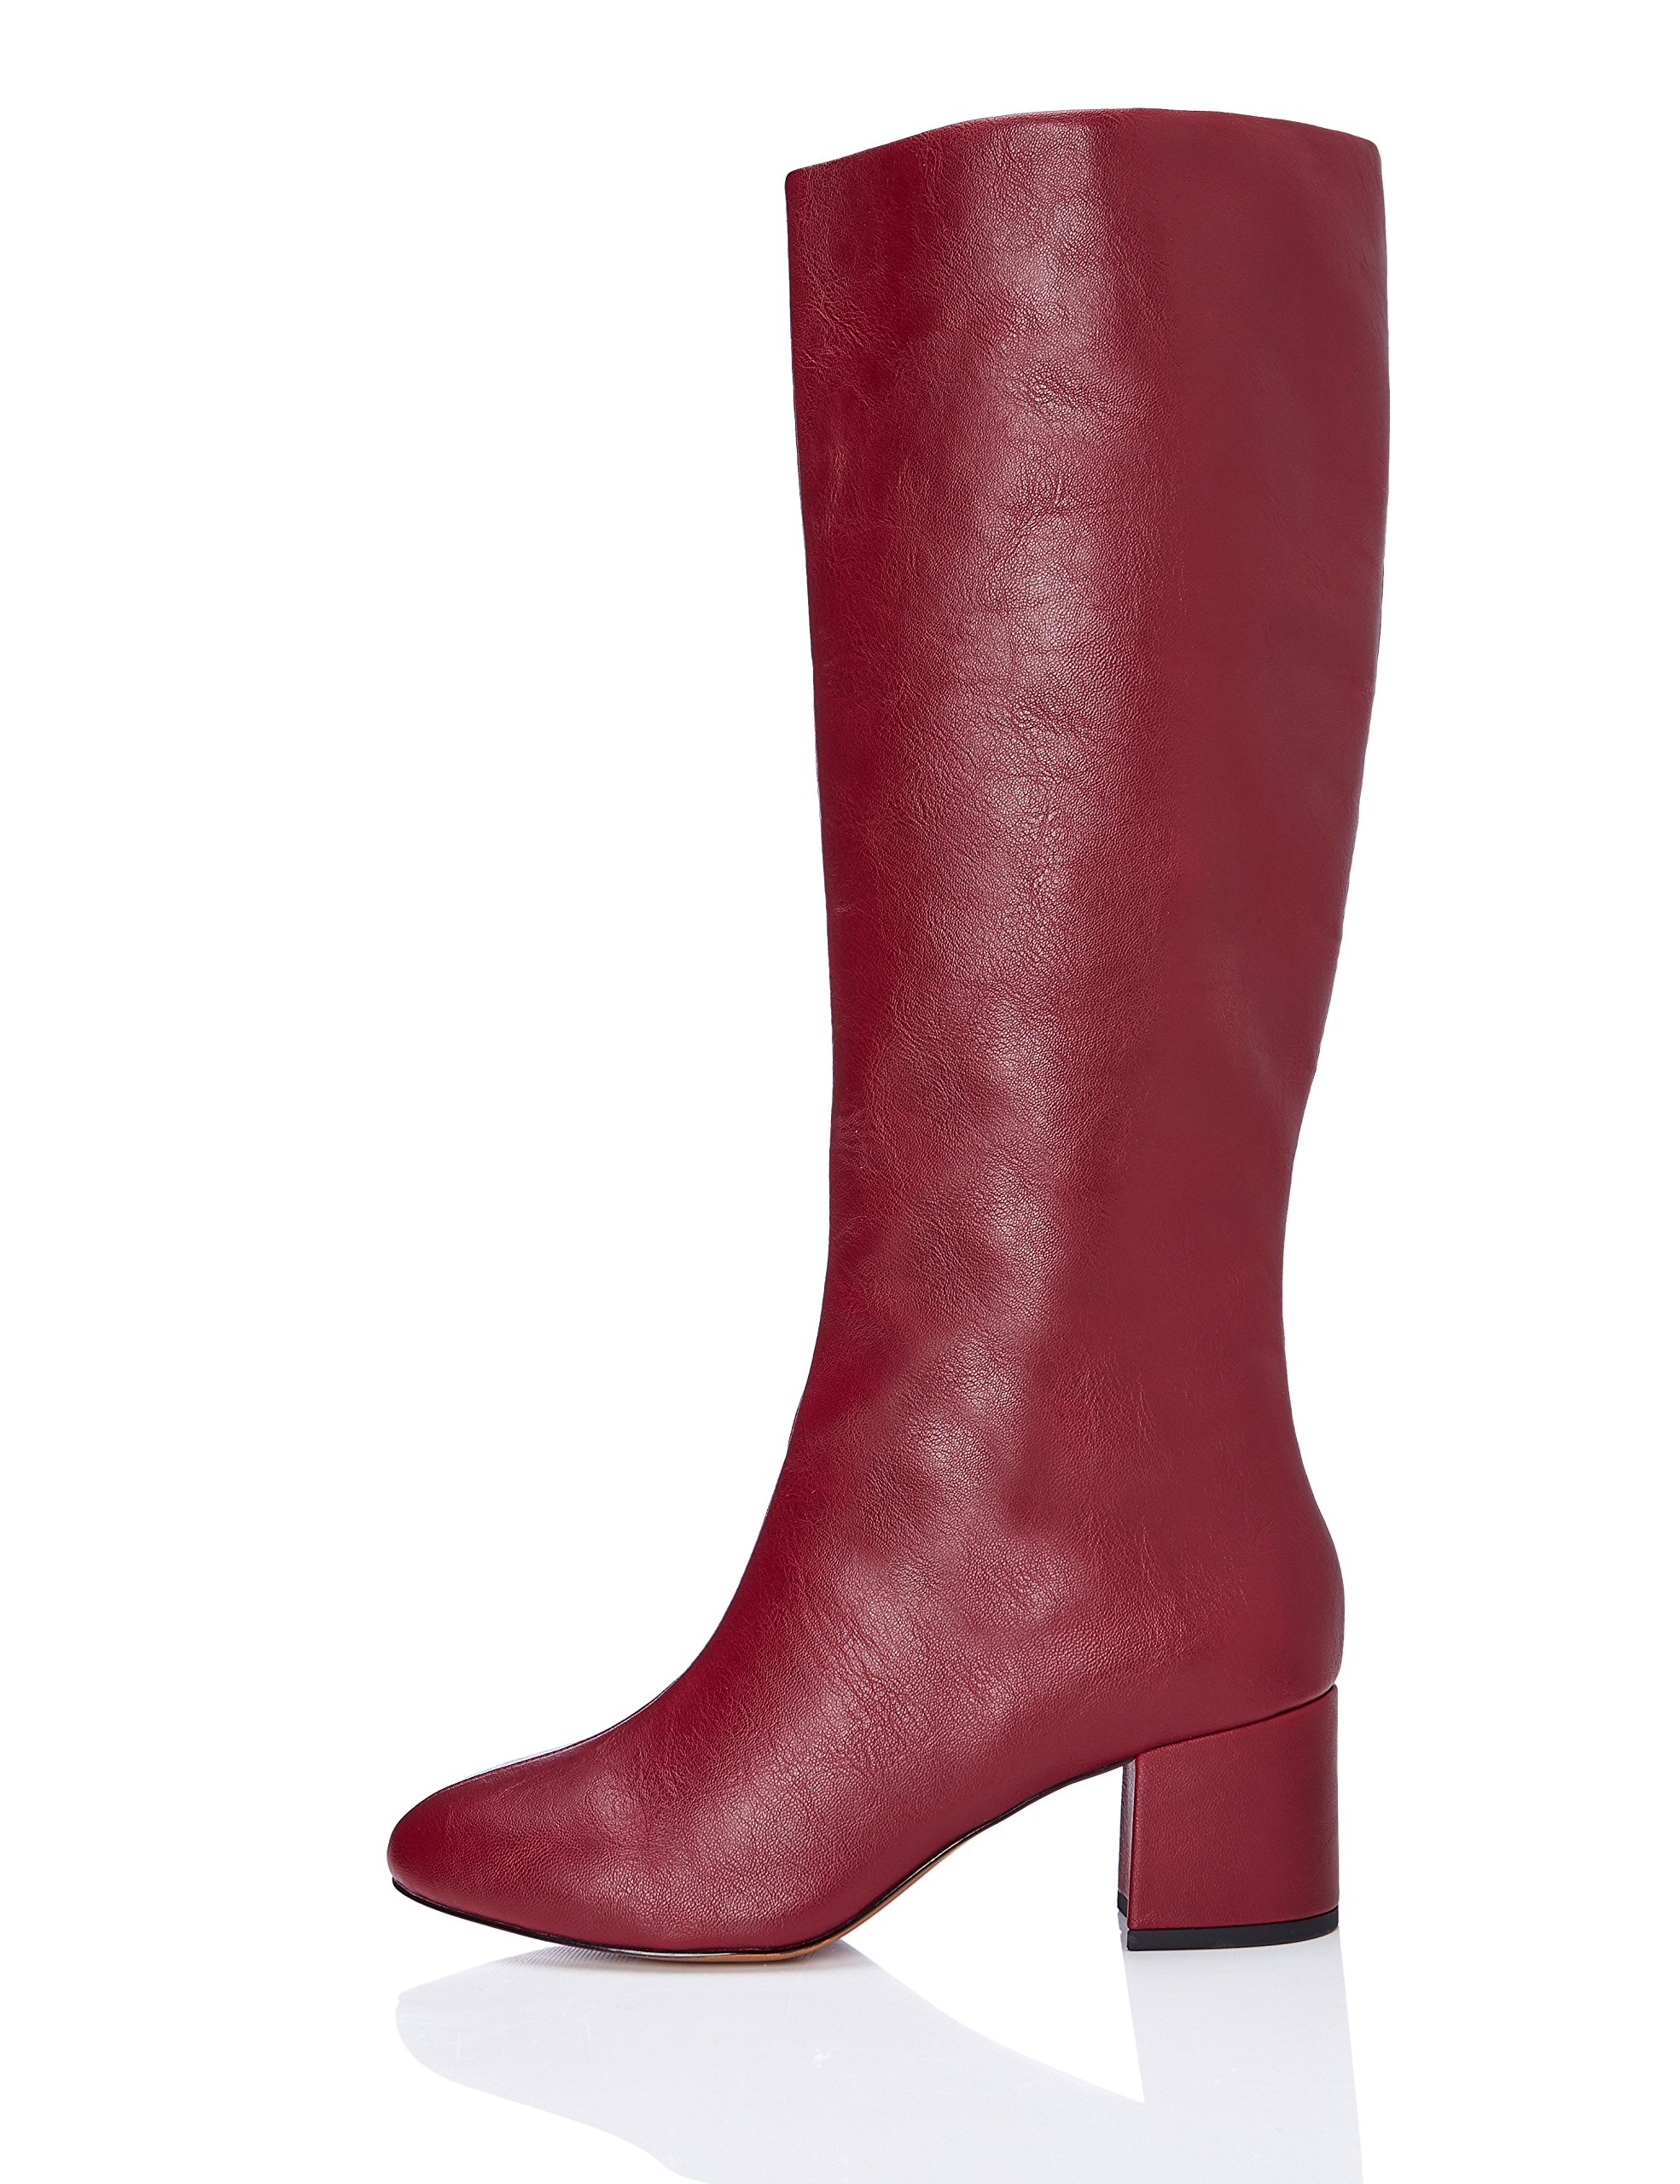 Red38 FemmeRougedk FemmeRougedk FindBottes Eu FindBottes FindBottes Eu FindBottes FemmeRougedk FemmeRougedk Red38 Eu Red38 Red38 hQdsrCtx